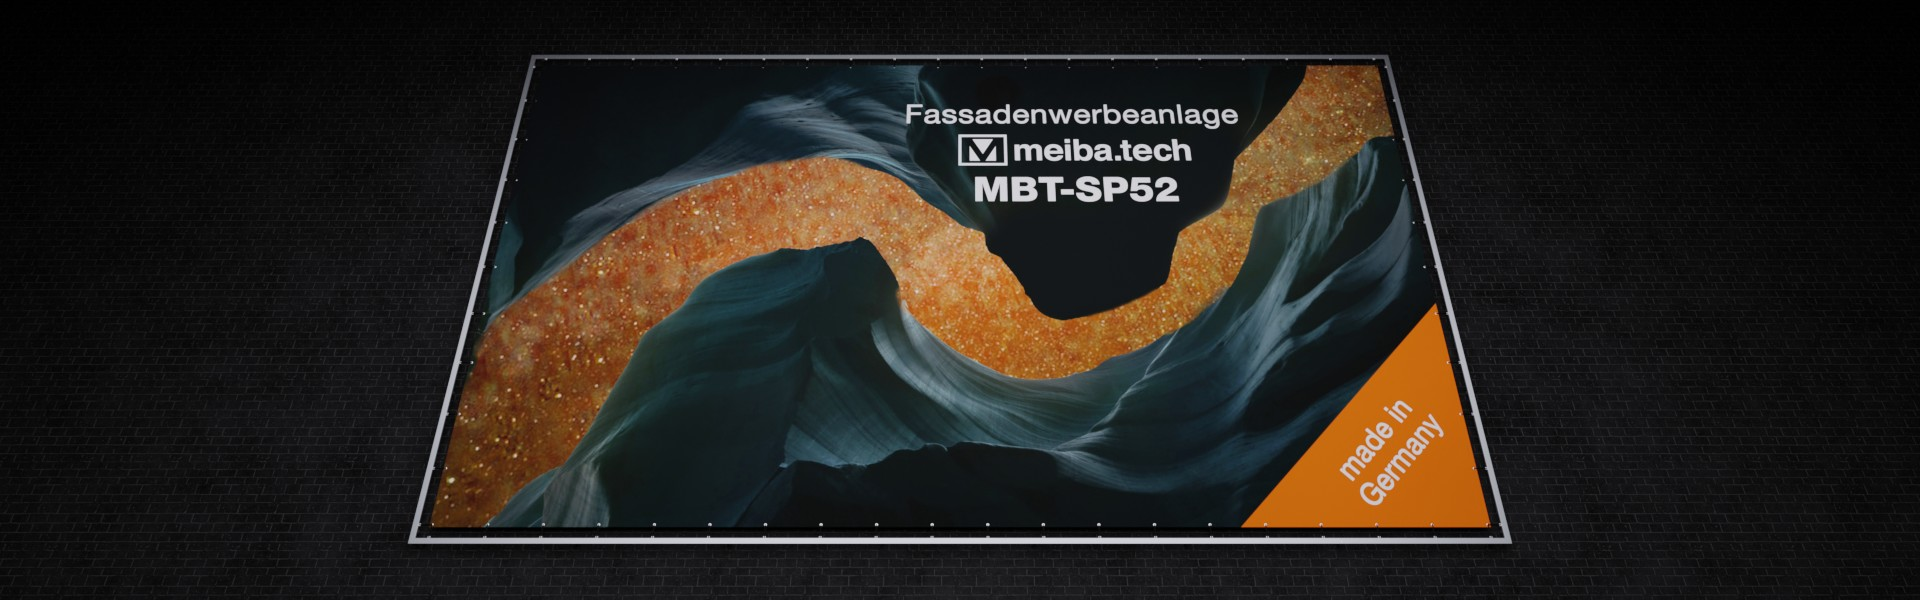 MBT-SP52: Modular advertising system for the attachment of facade advertising, mounting from the front below